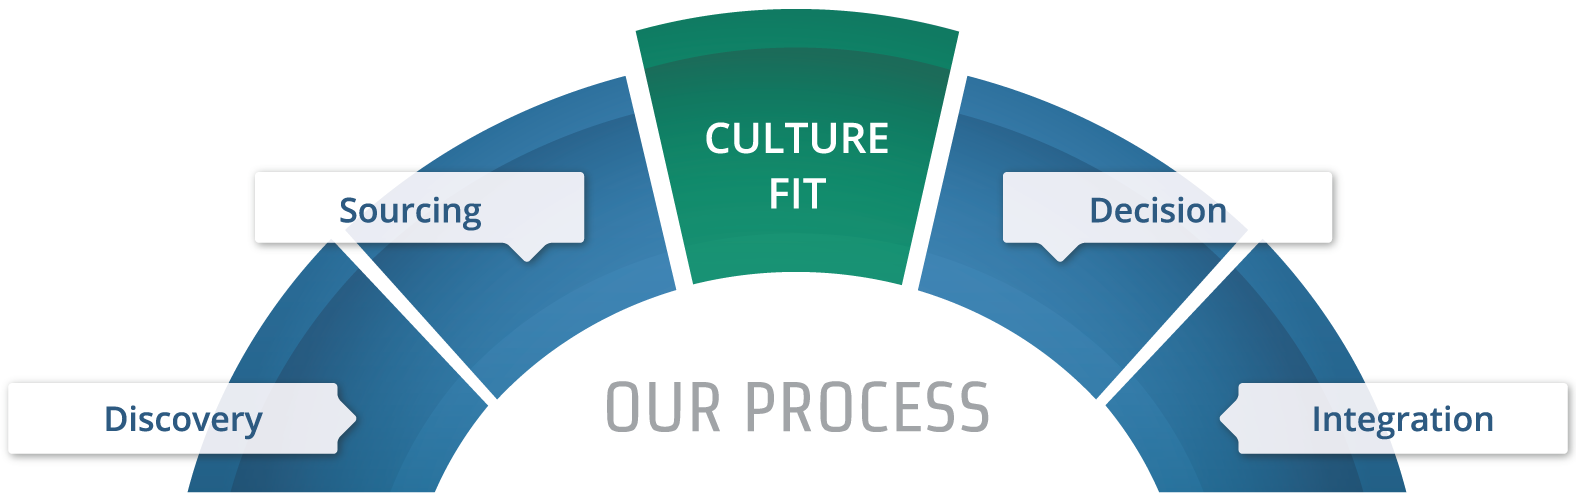 Culture Fit - Our Process: Discovery, Integration, Sourcing, Decision